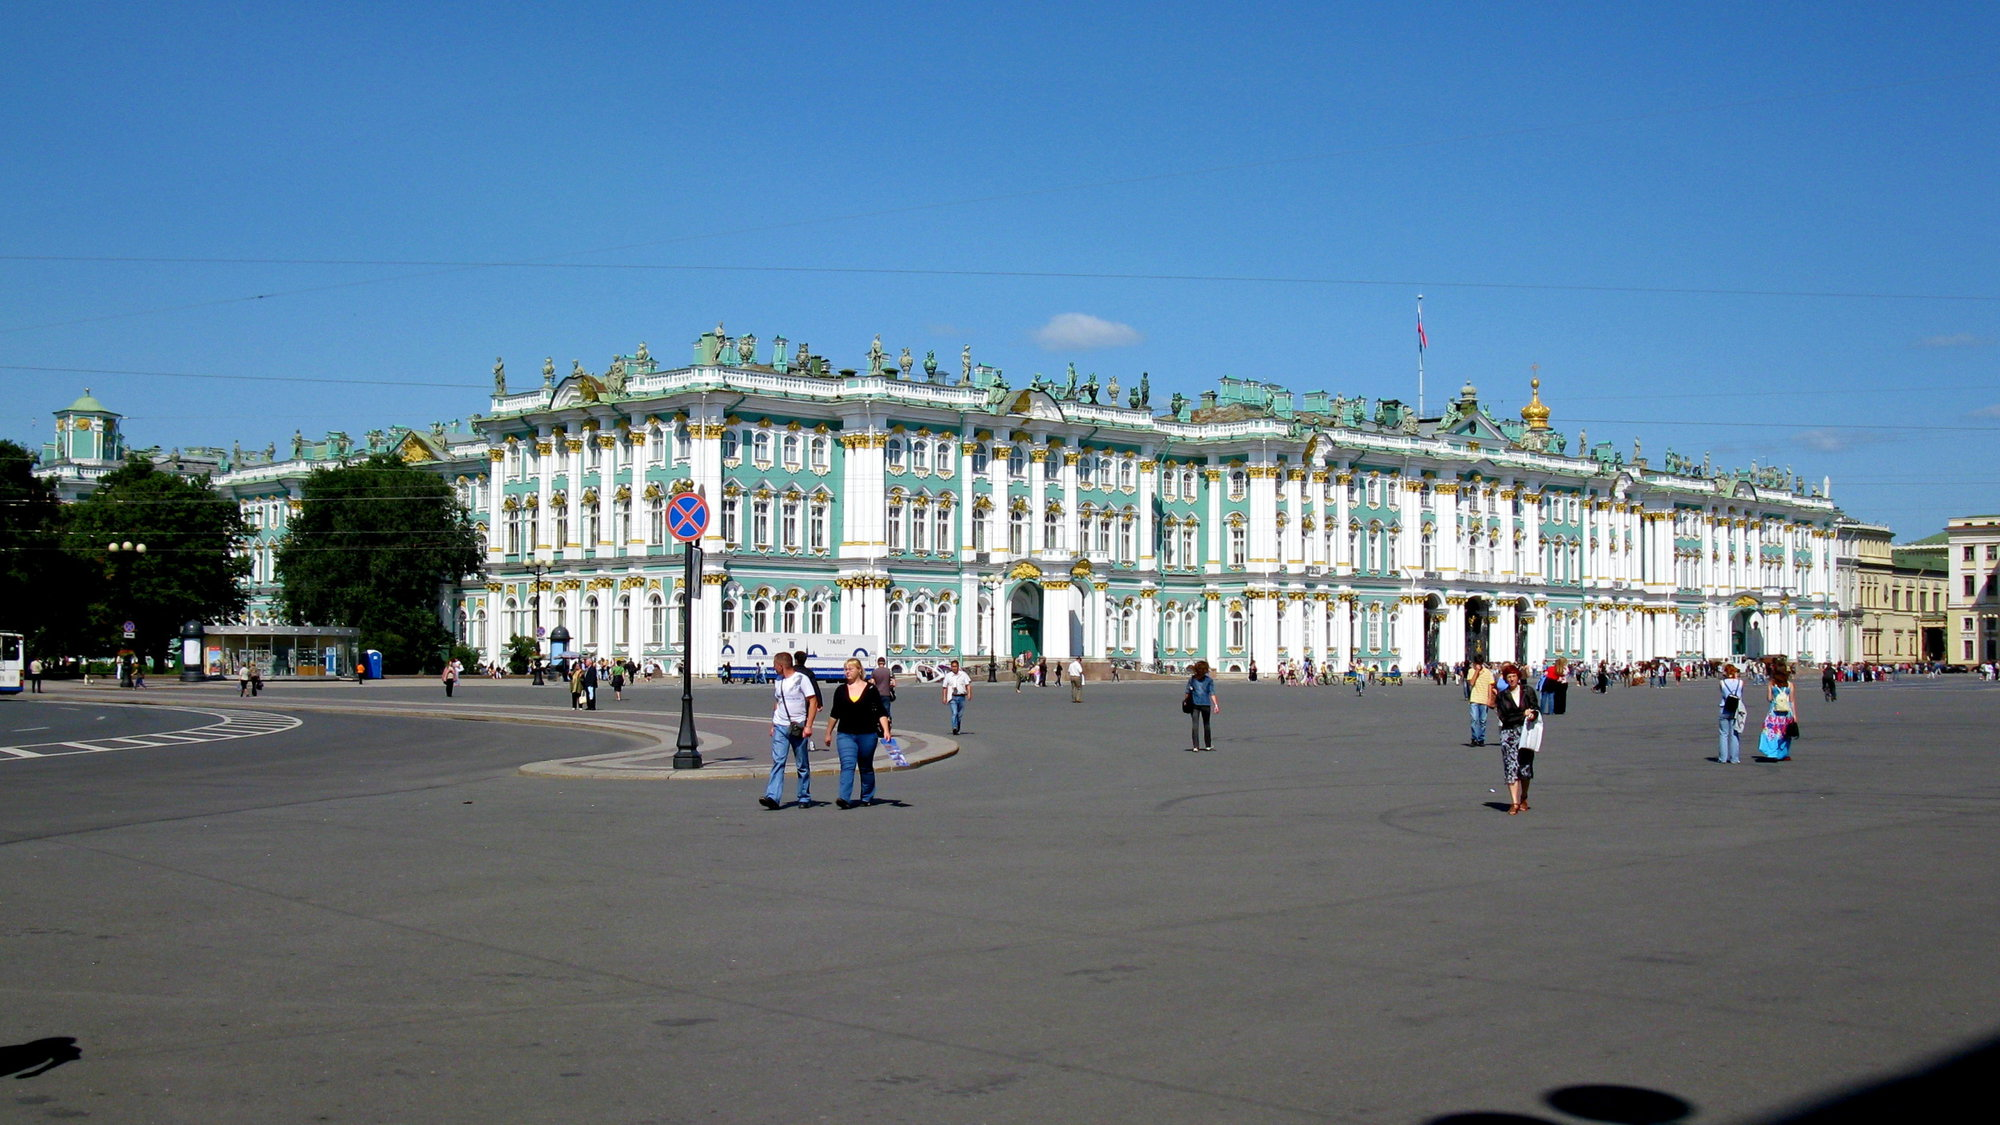 Winter Palace where royal family used to live